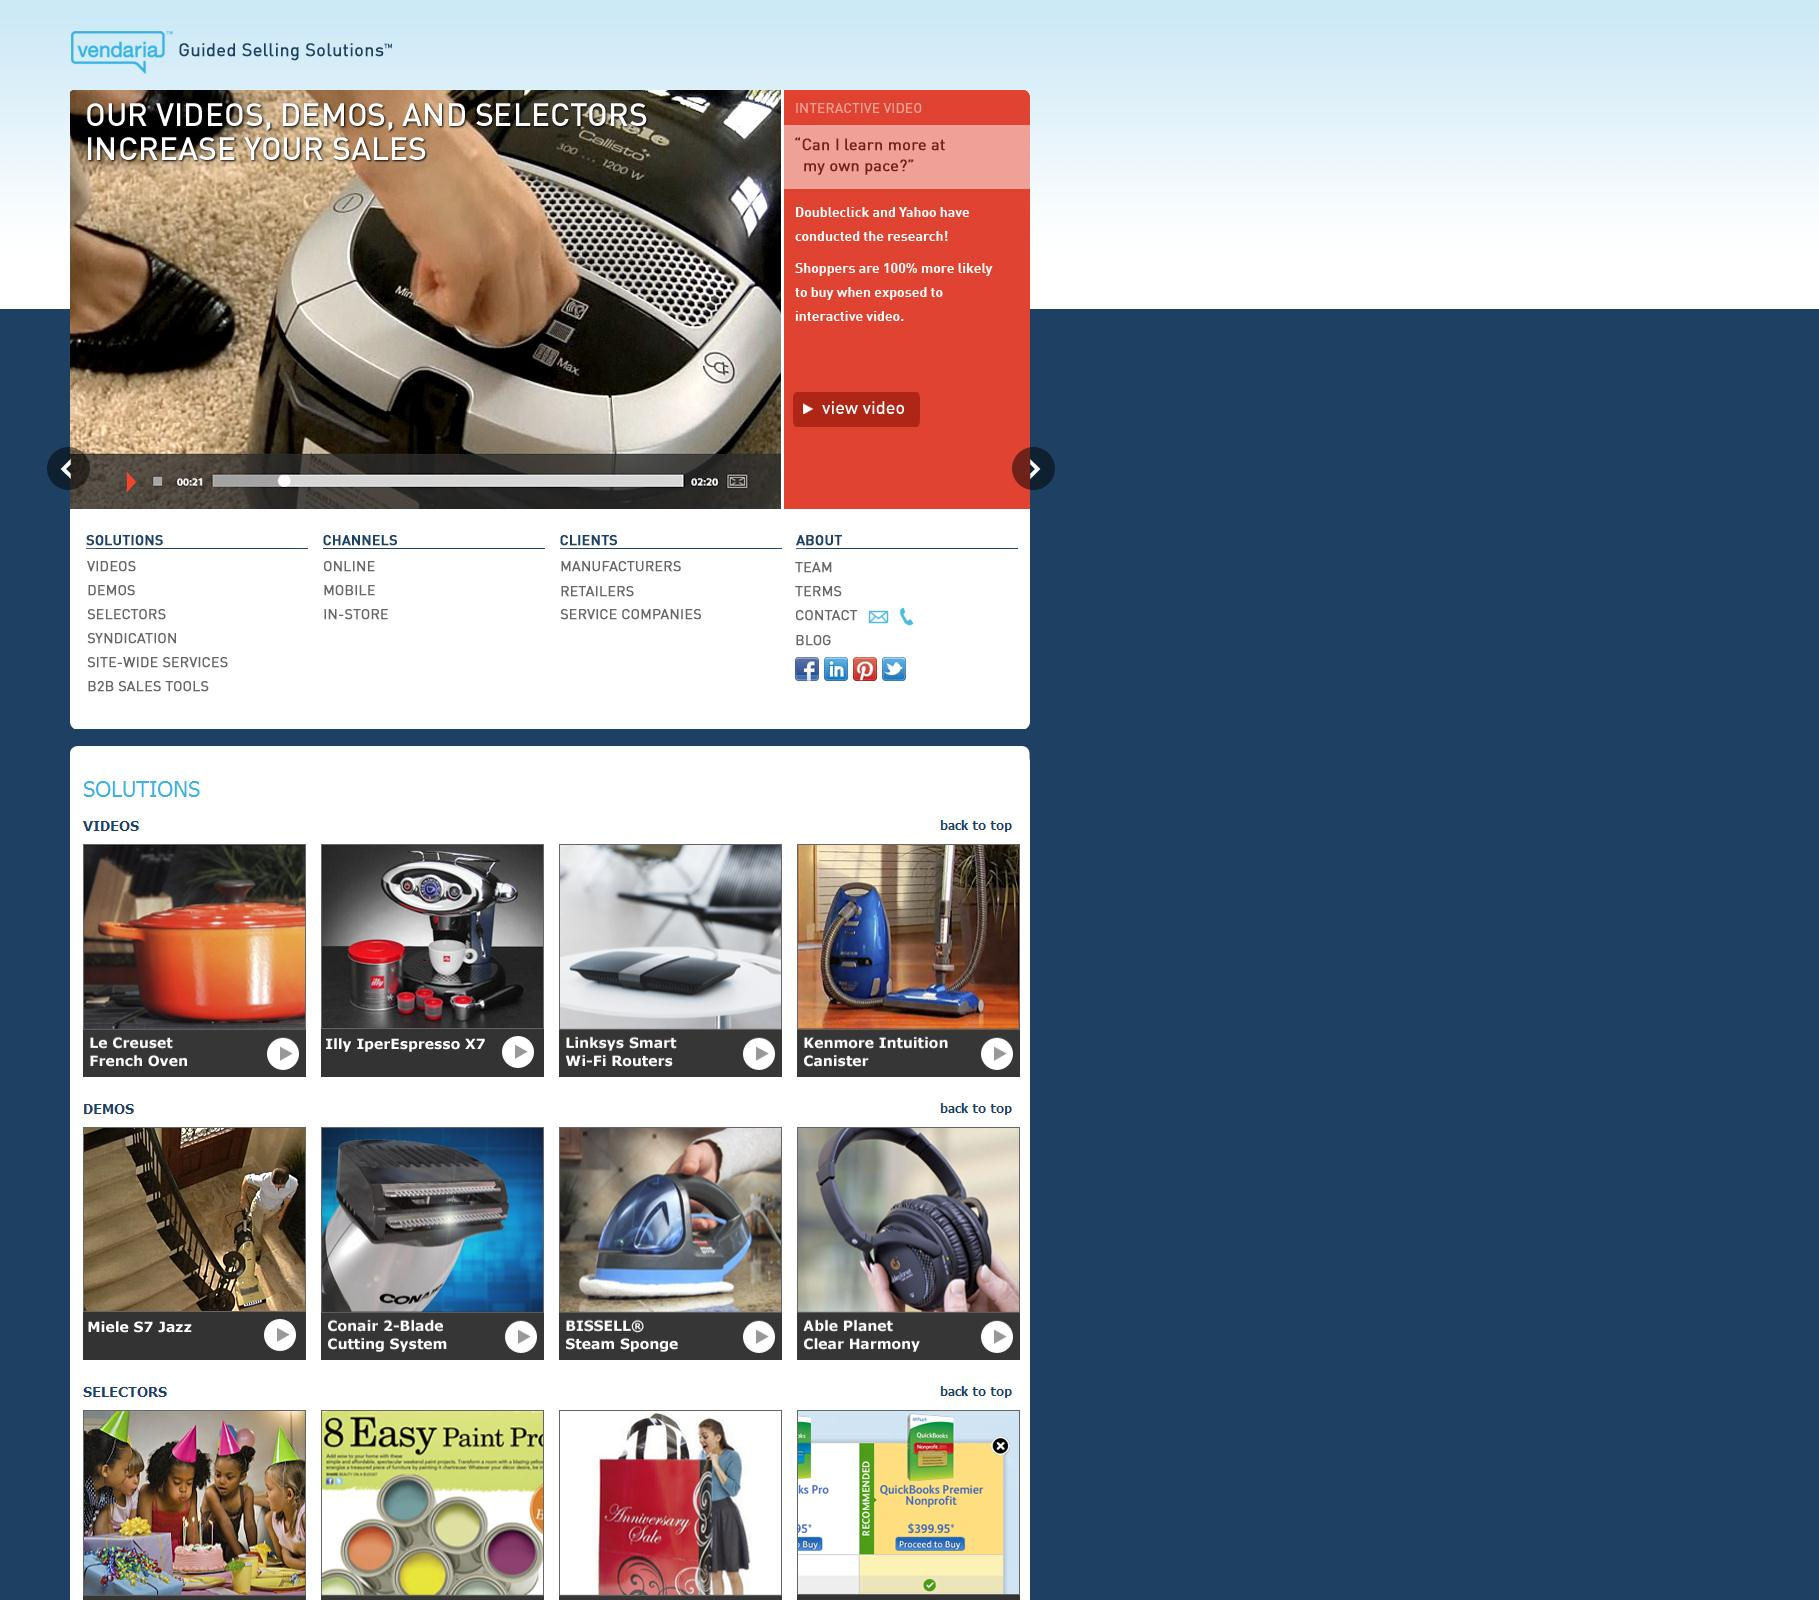 Vendaria Media Inc - Helping shoppers find the right products based on their individual preferences